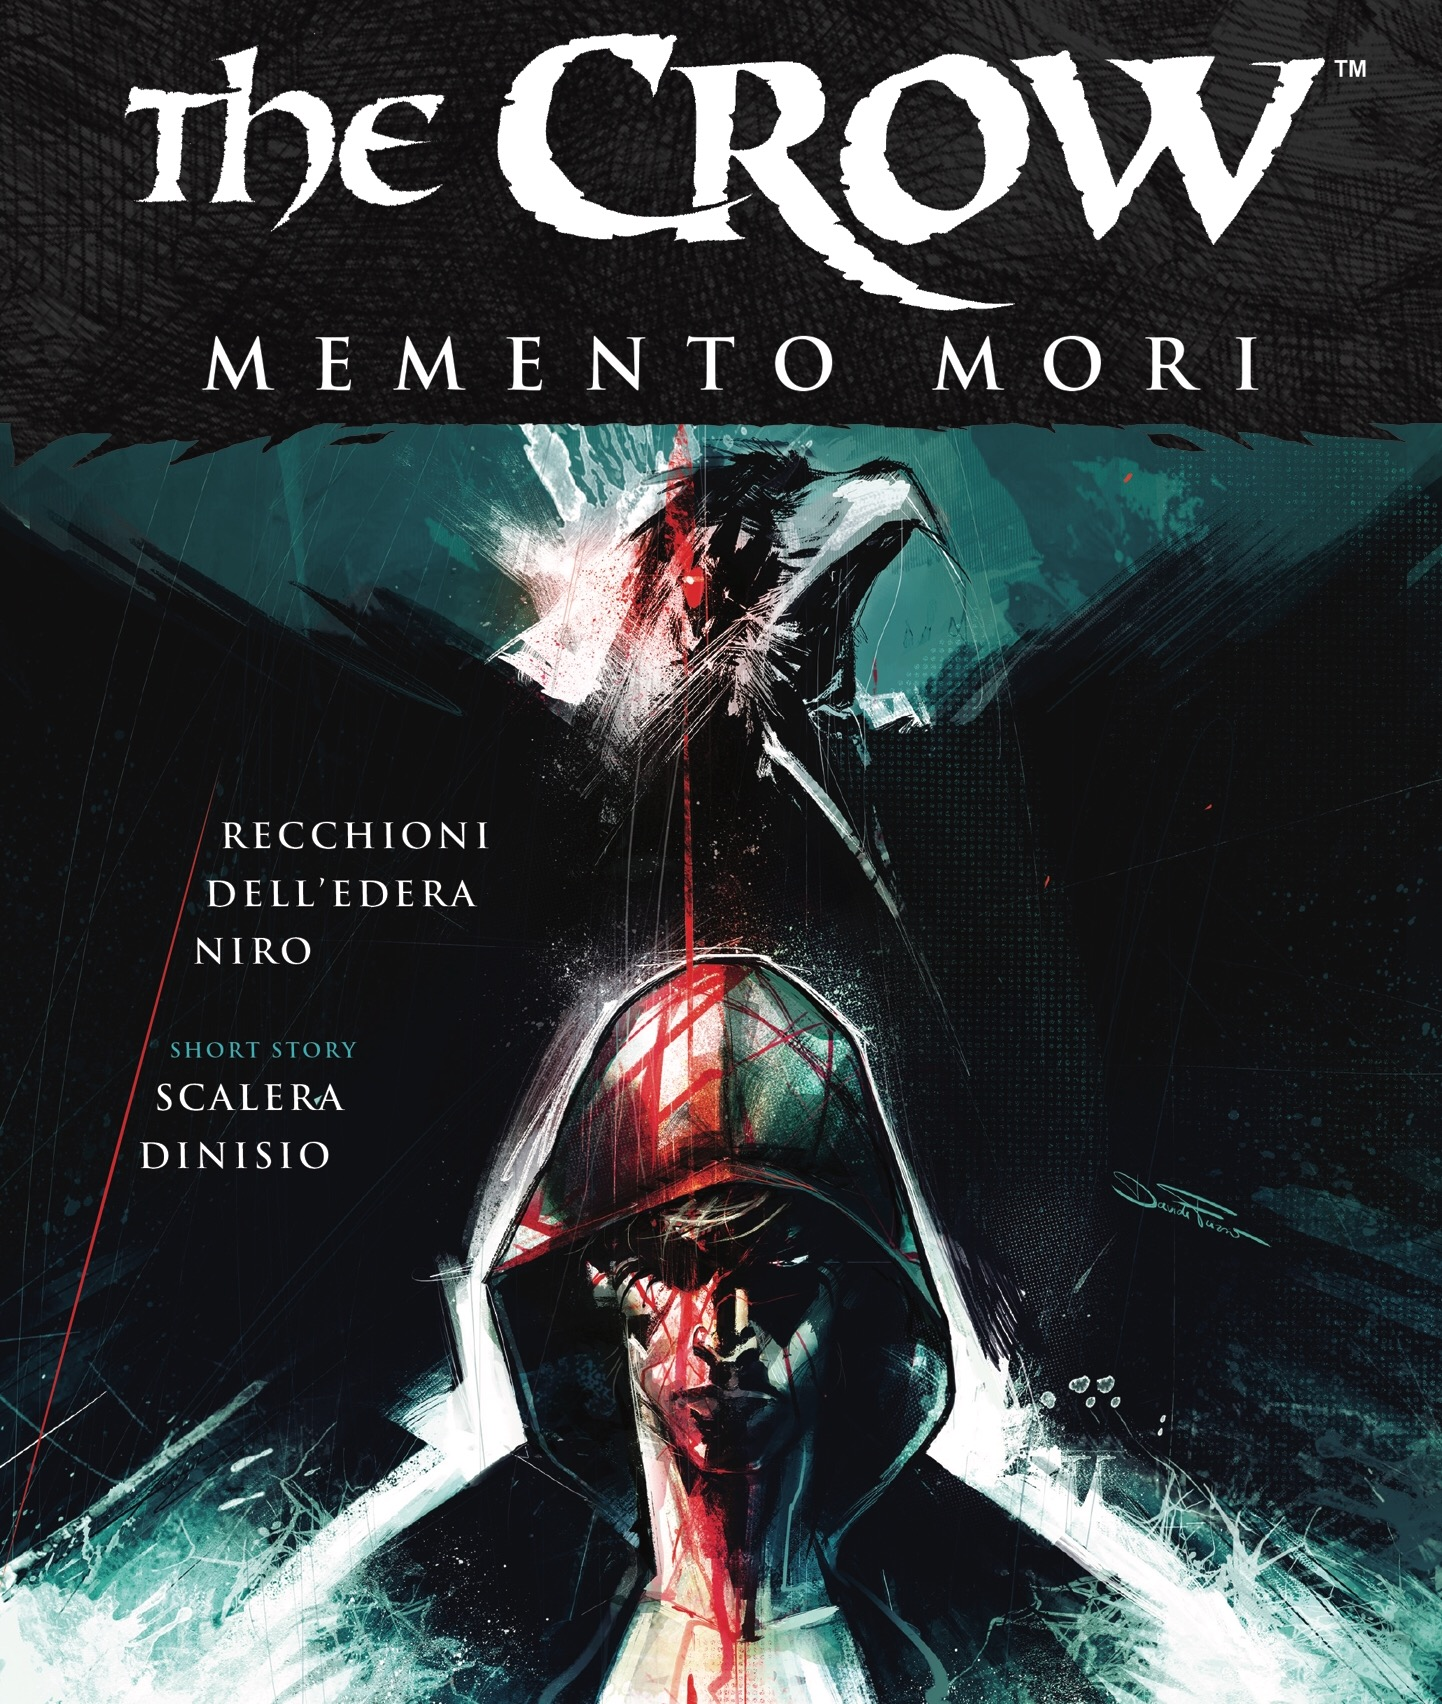 The Crow: Memento Mori #1 Review